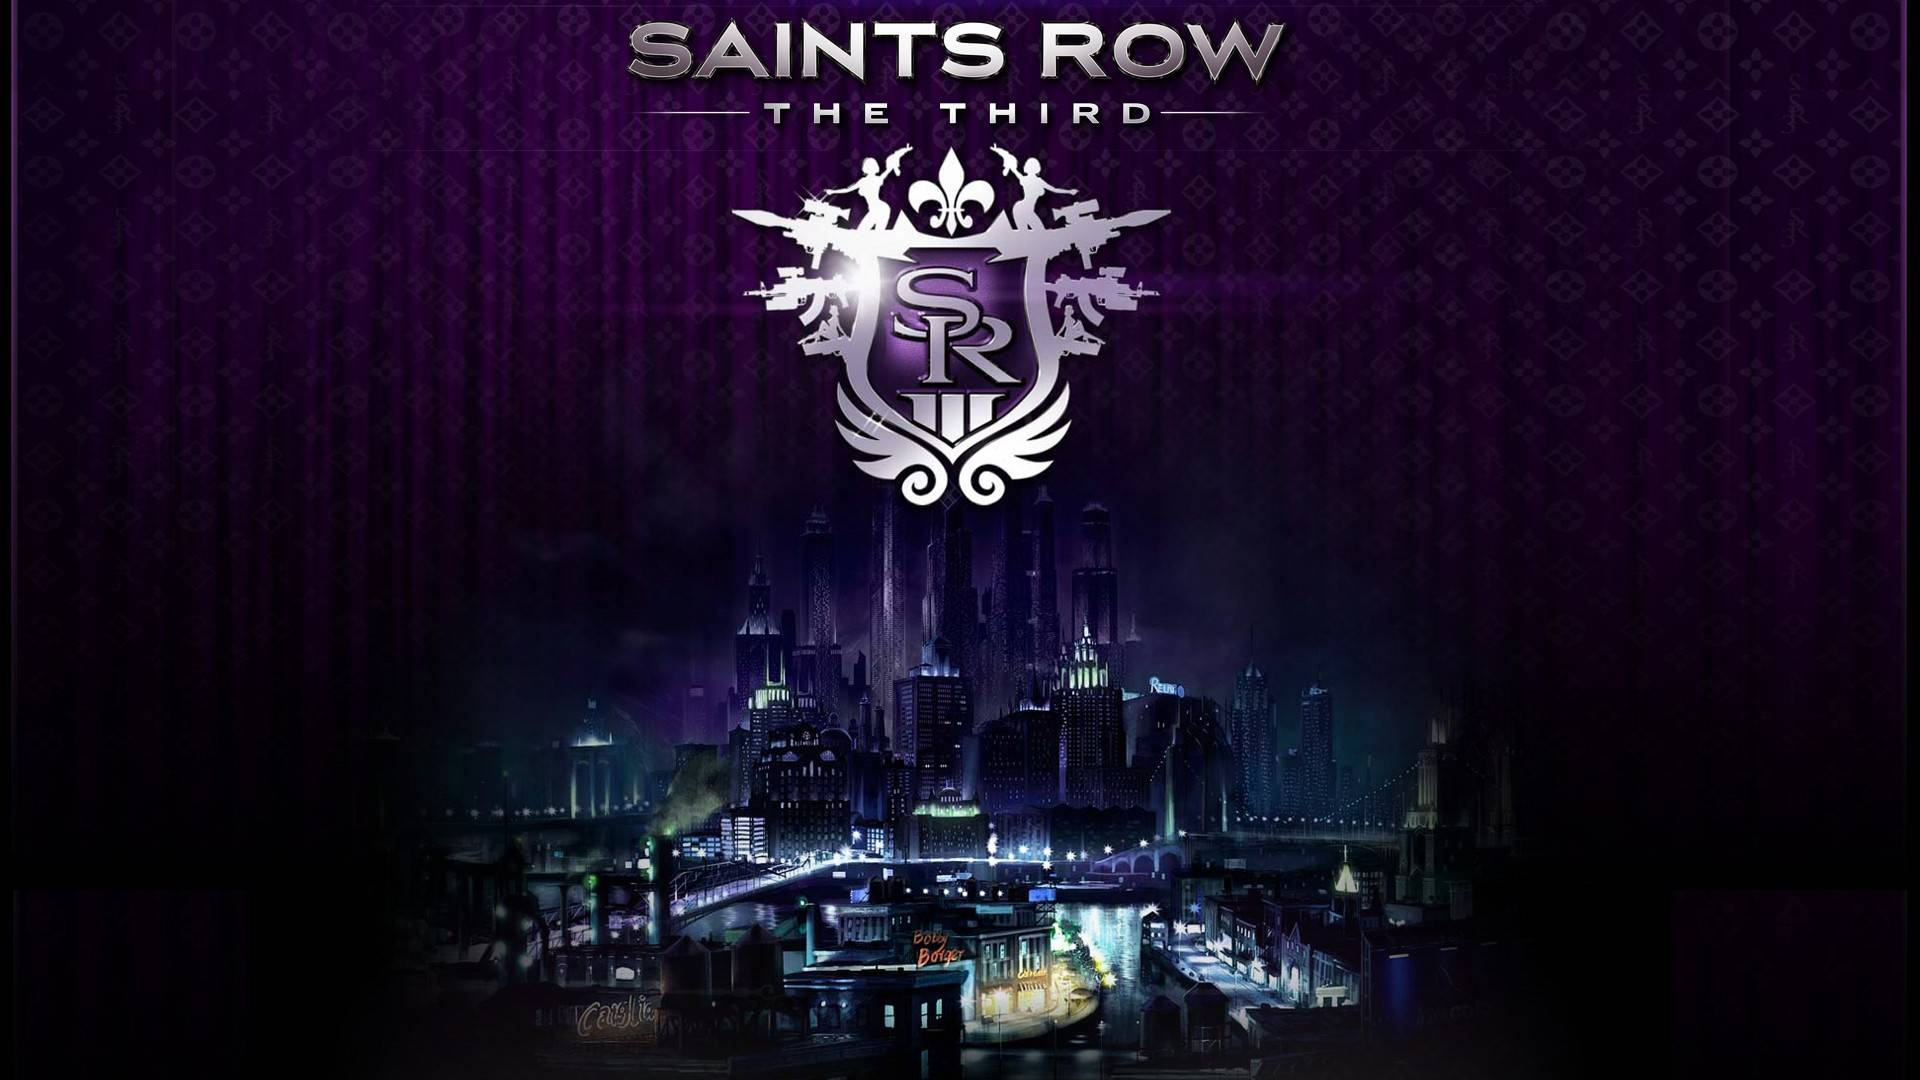 Image from httpgamingboltwp contentgallerysaints row 3 image from httpgamingboltwp contentgallerysaints row 3 wallpapers in hdsaints row wallpapers in hdg saints row gallery edition voltagebd Images